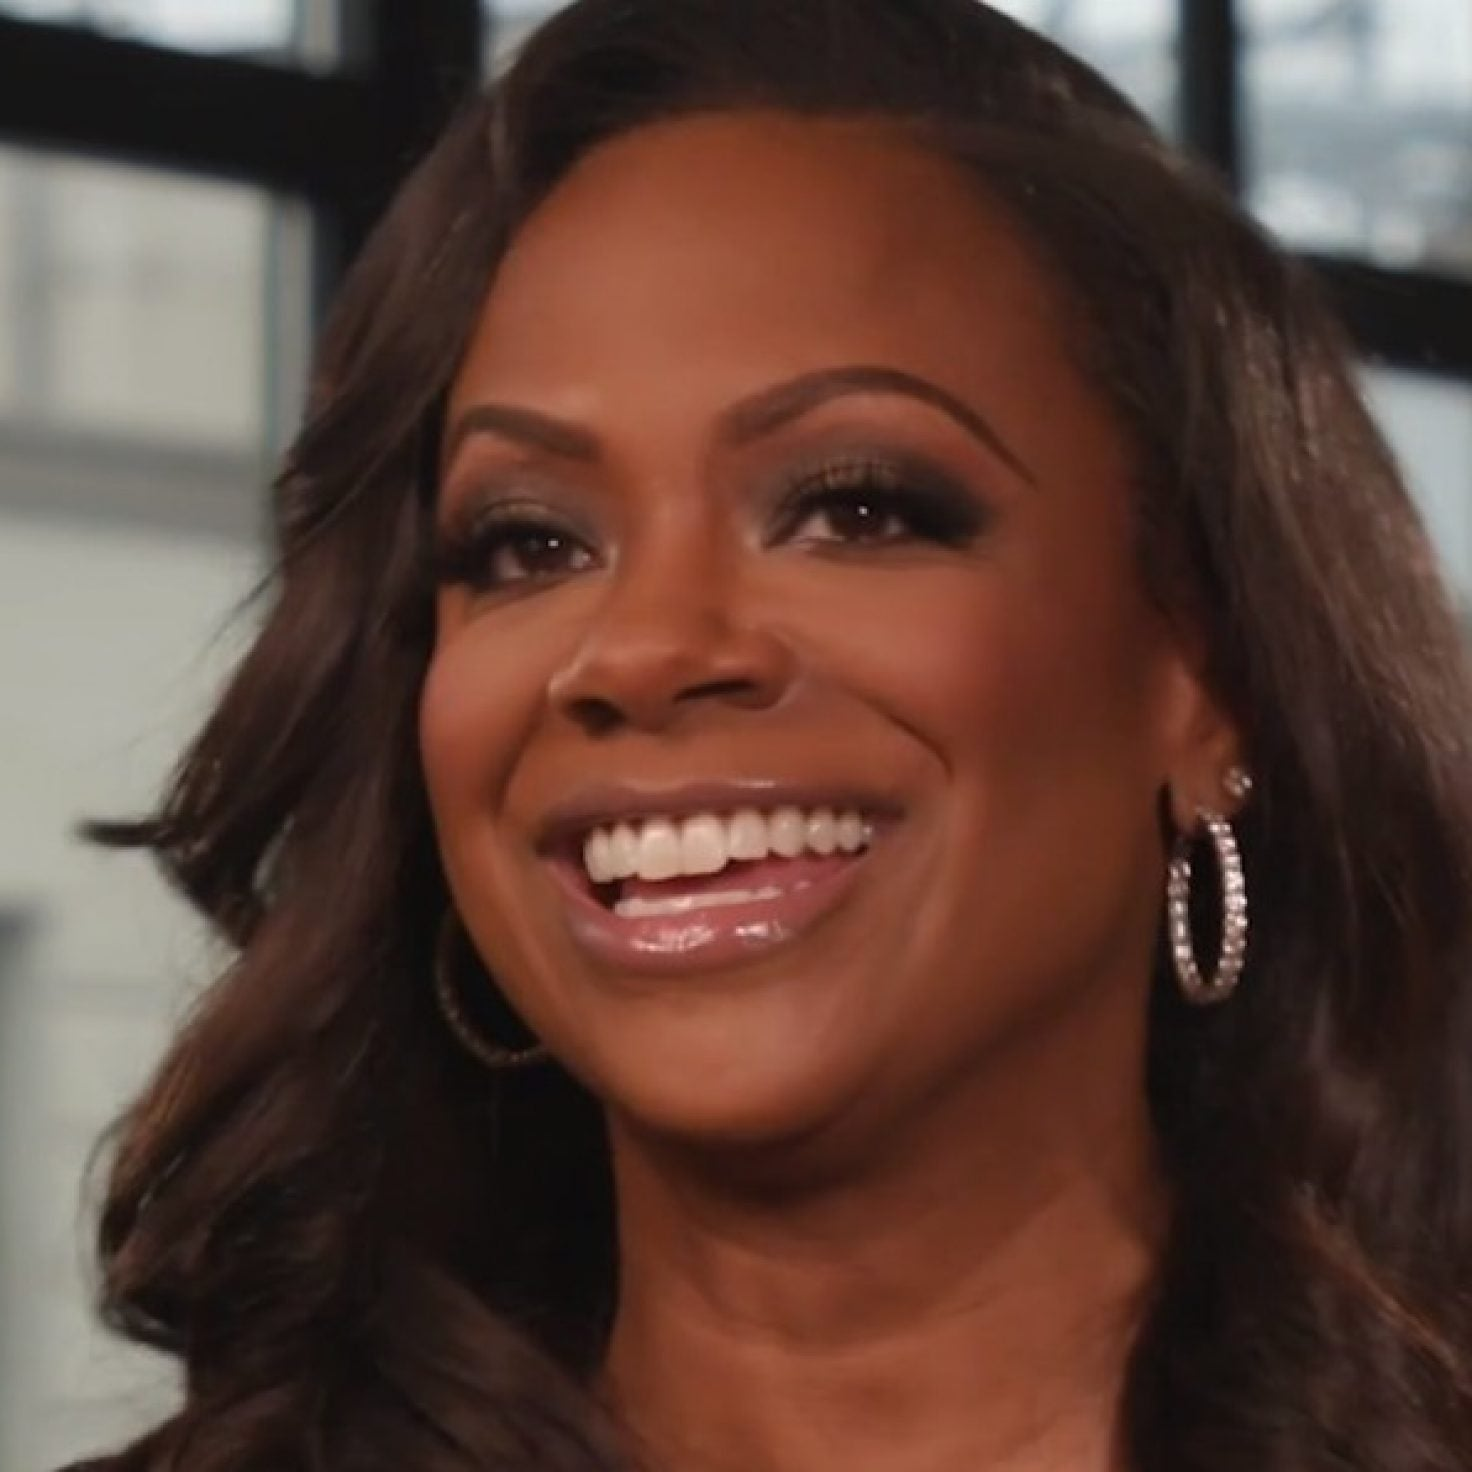 Exclusive: Kandi Burruss Gives Advice To Her 'RHOA' Co-Stars In Troubled Relationships